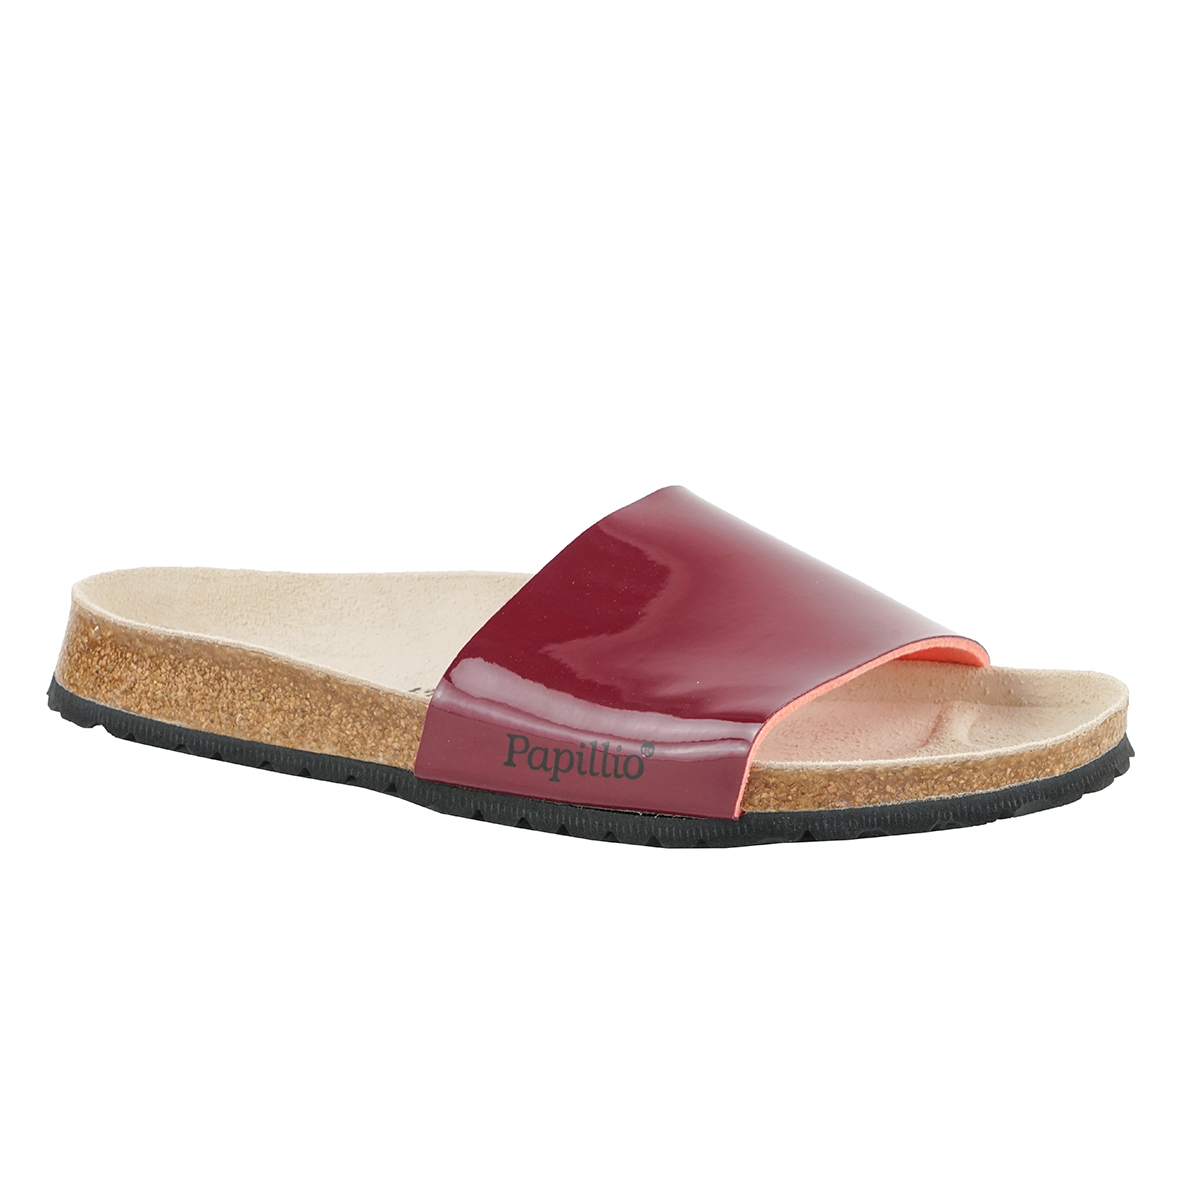 39f1b2261ae6 Details about Birkenstock PAPILLIO Cora Birko-Flor Two-Tone Patent Wine 42